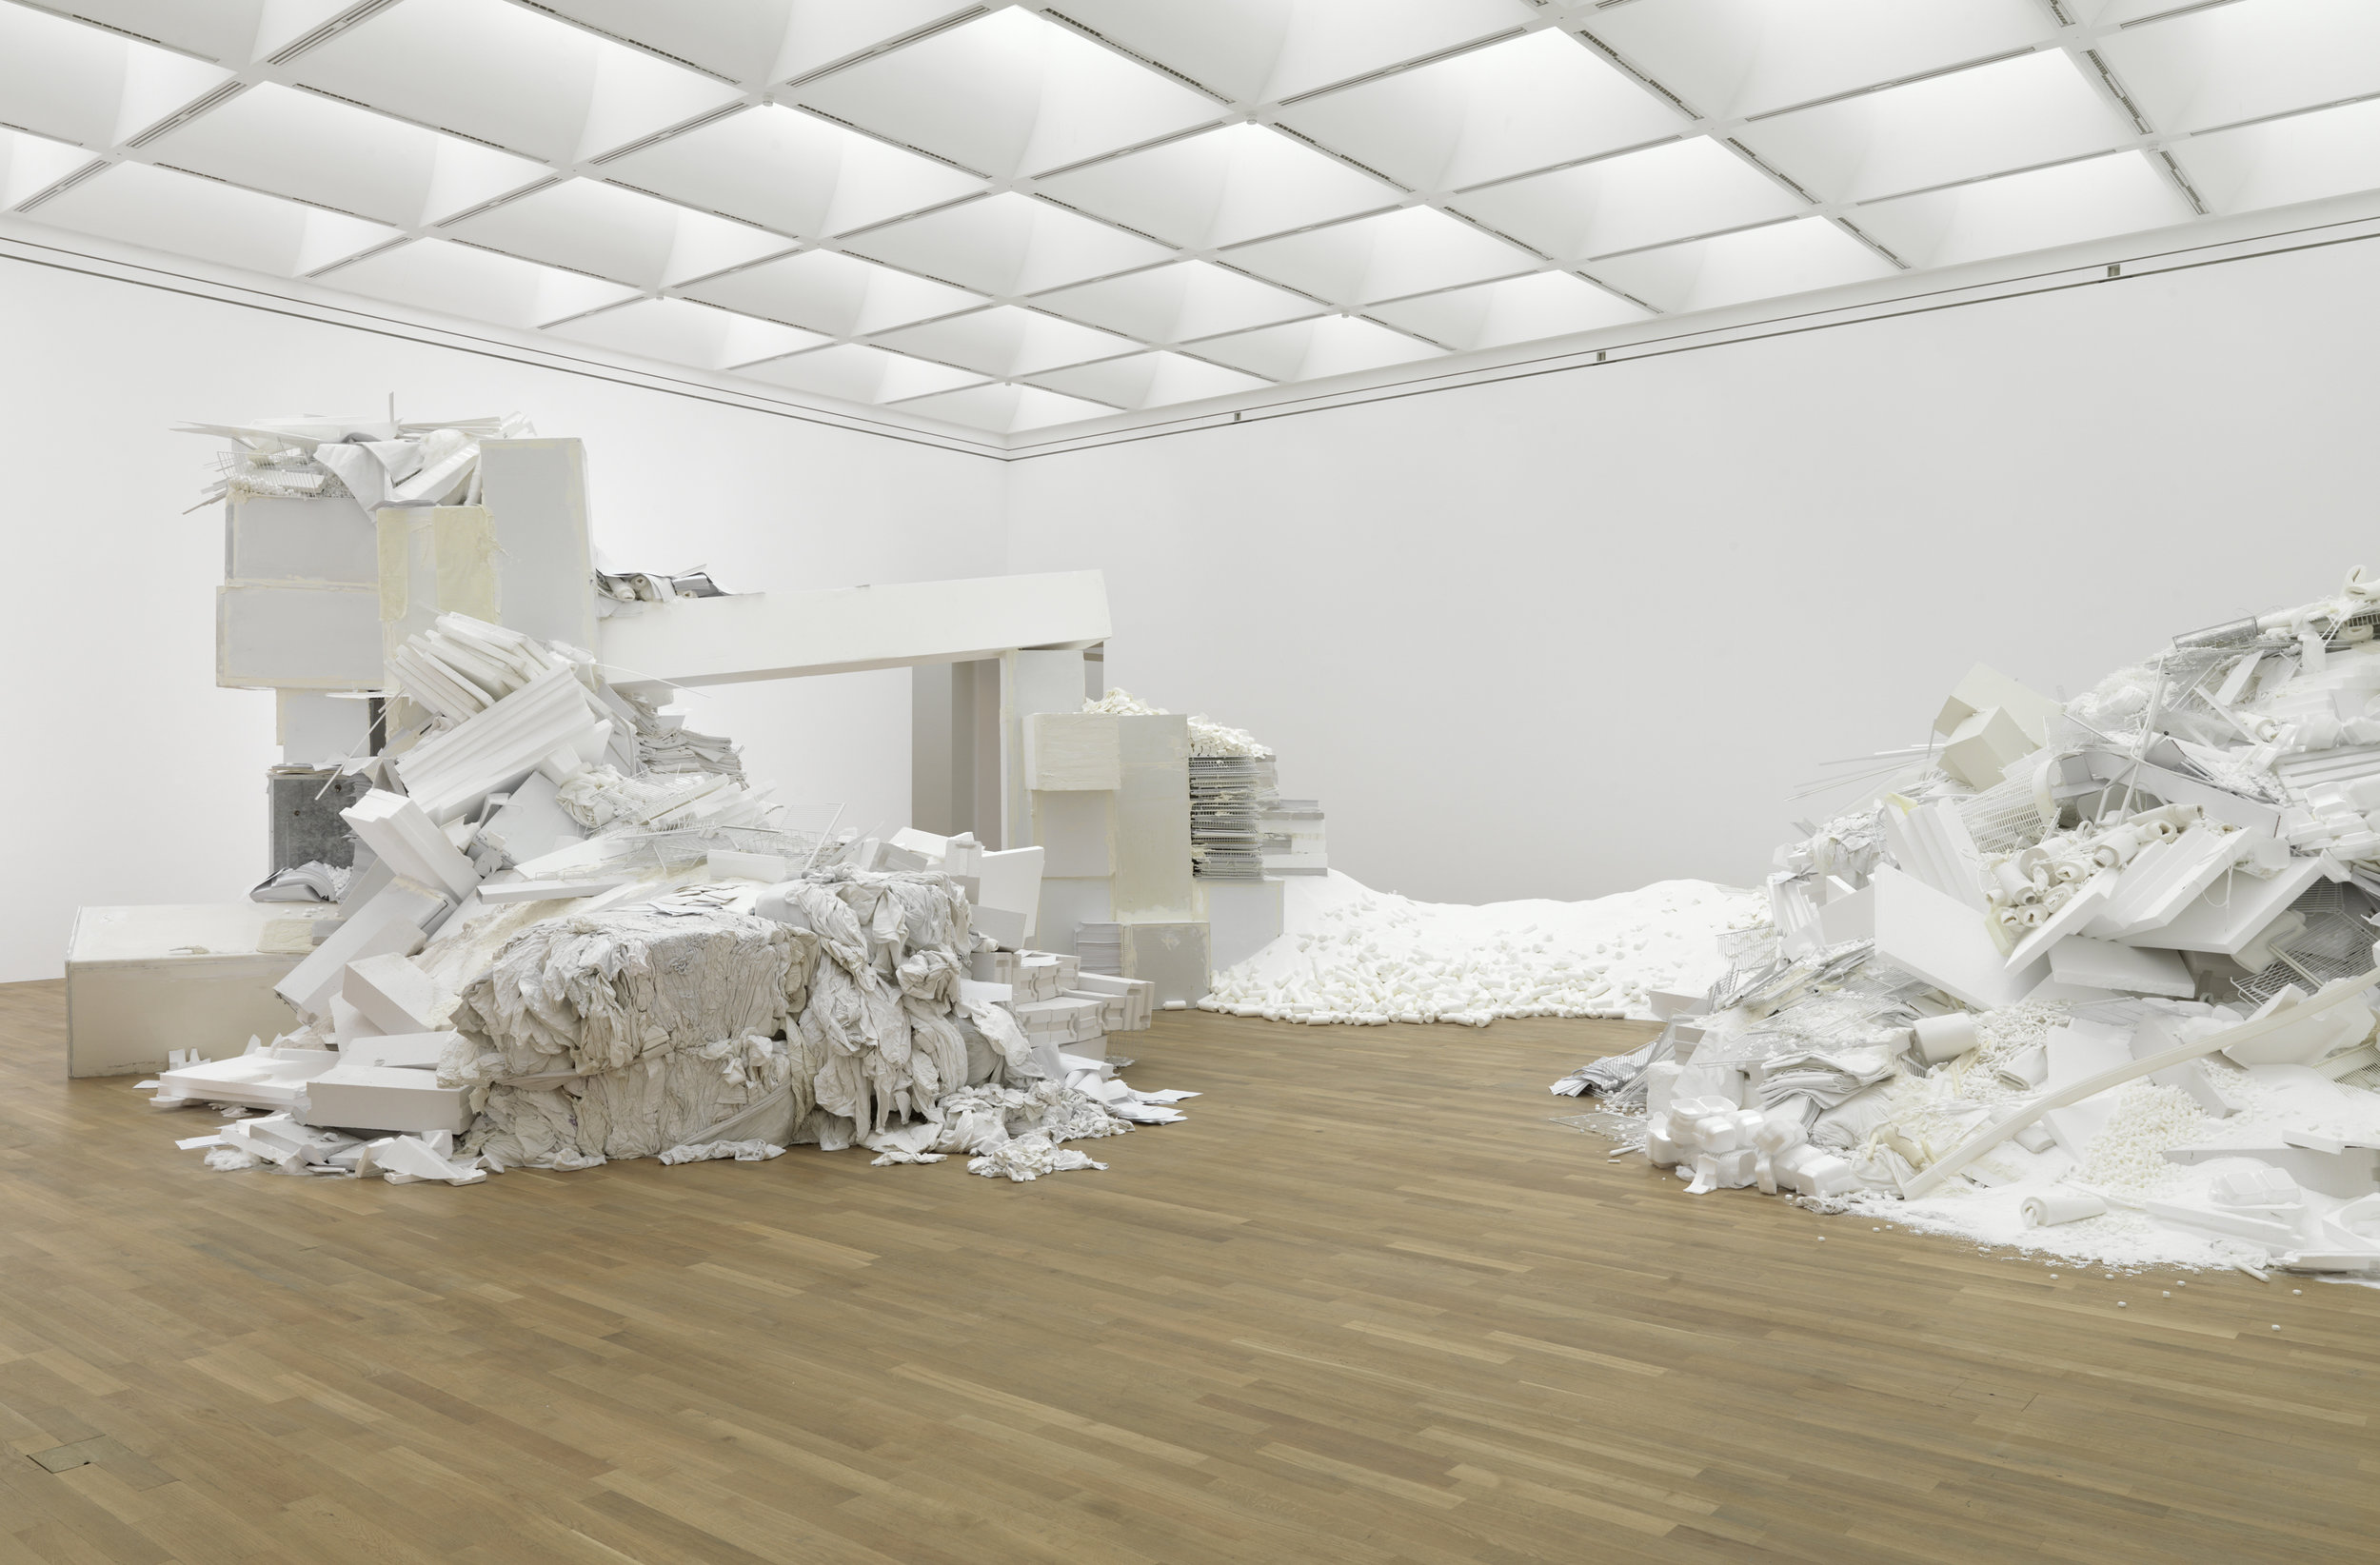 Thomas Rentmeister,  Muda , 2011, various materials (incl. refrigerators, Penaten baby cream, Styrofoam, laundry, sugar, paper, flour, candles, plastic parts, tissues, cotton swabs, tampons, washing powder), approximately 385 x 1195 x 1145 cm. Exhibition view Kunstmuseum Bonn. Photo: Berndt Borchardt. Image Courtesy of the Artist and GAGPROJECTS, Adelaide.